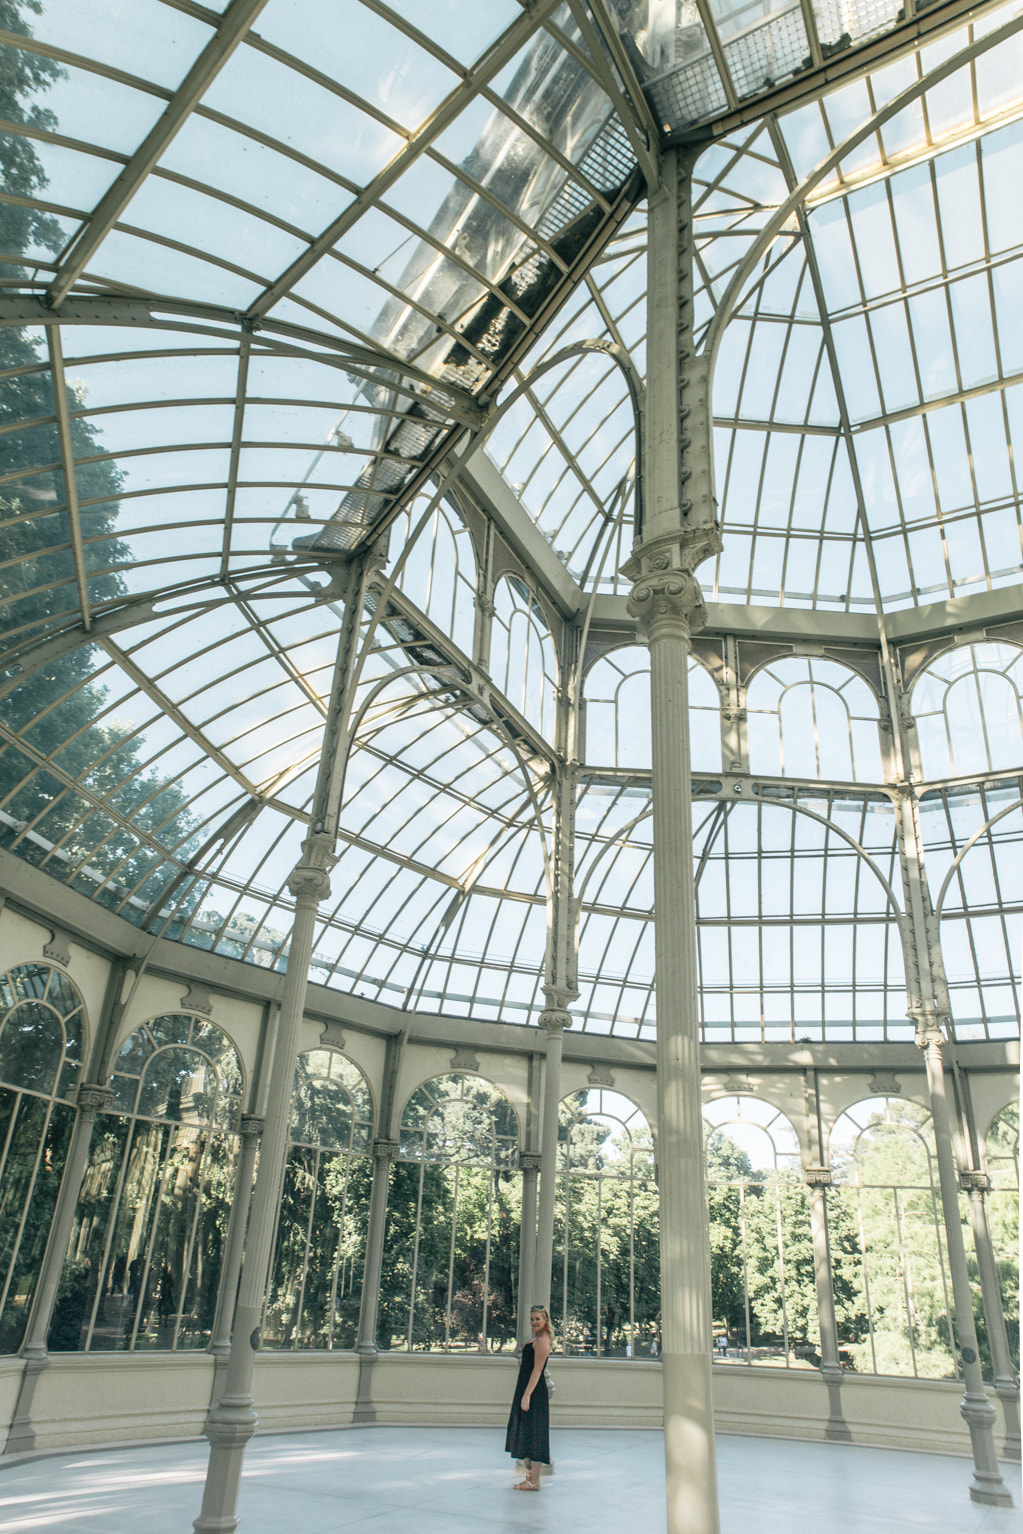 The Palacio de Cristal, Madrid by The Belle Blog